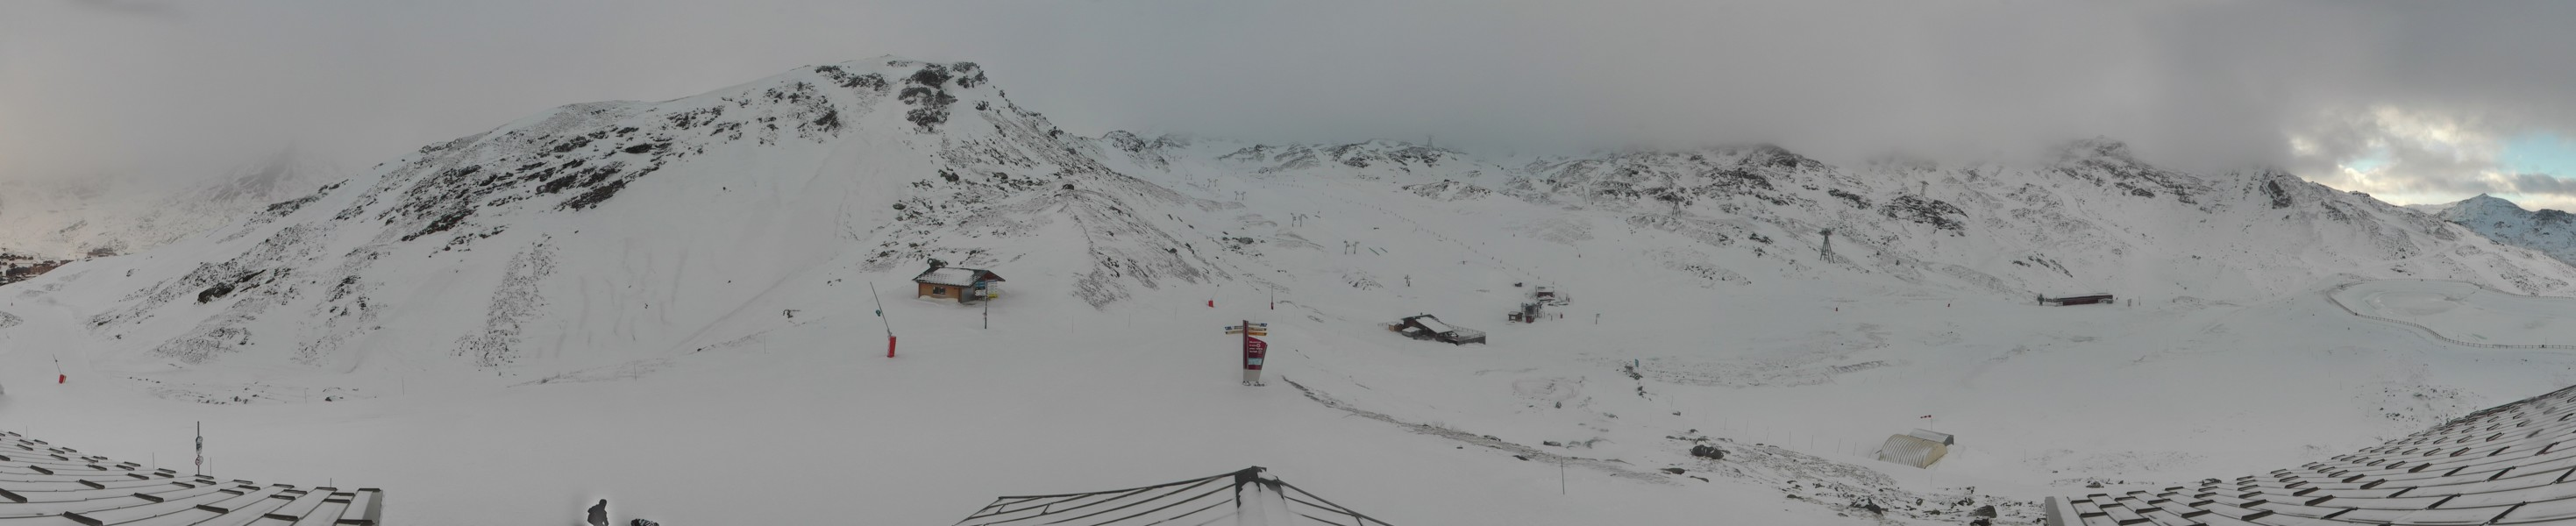 Webcam,Val Thorens